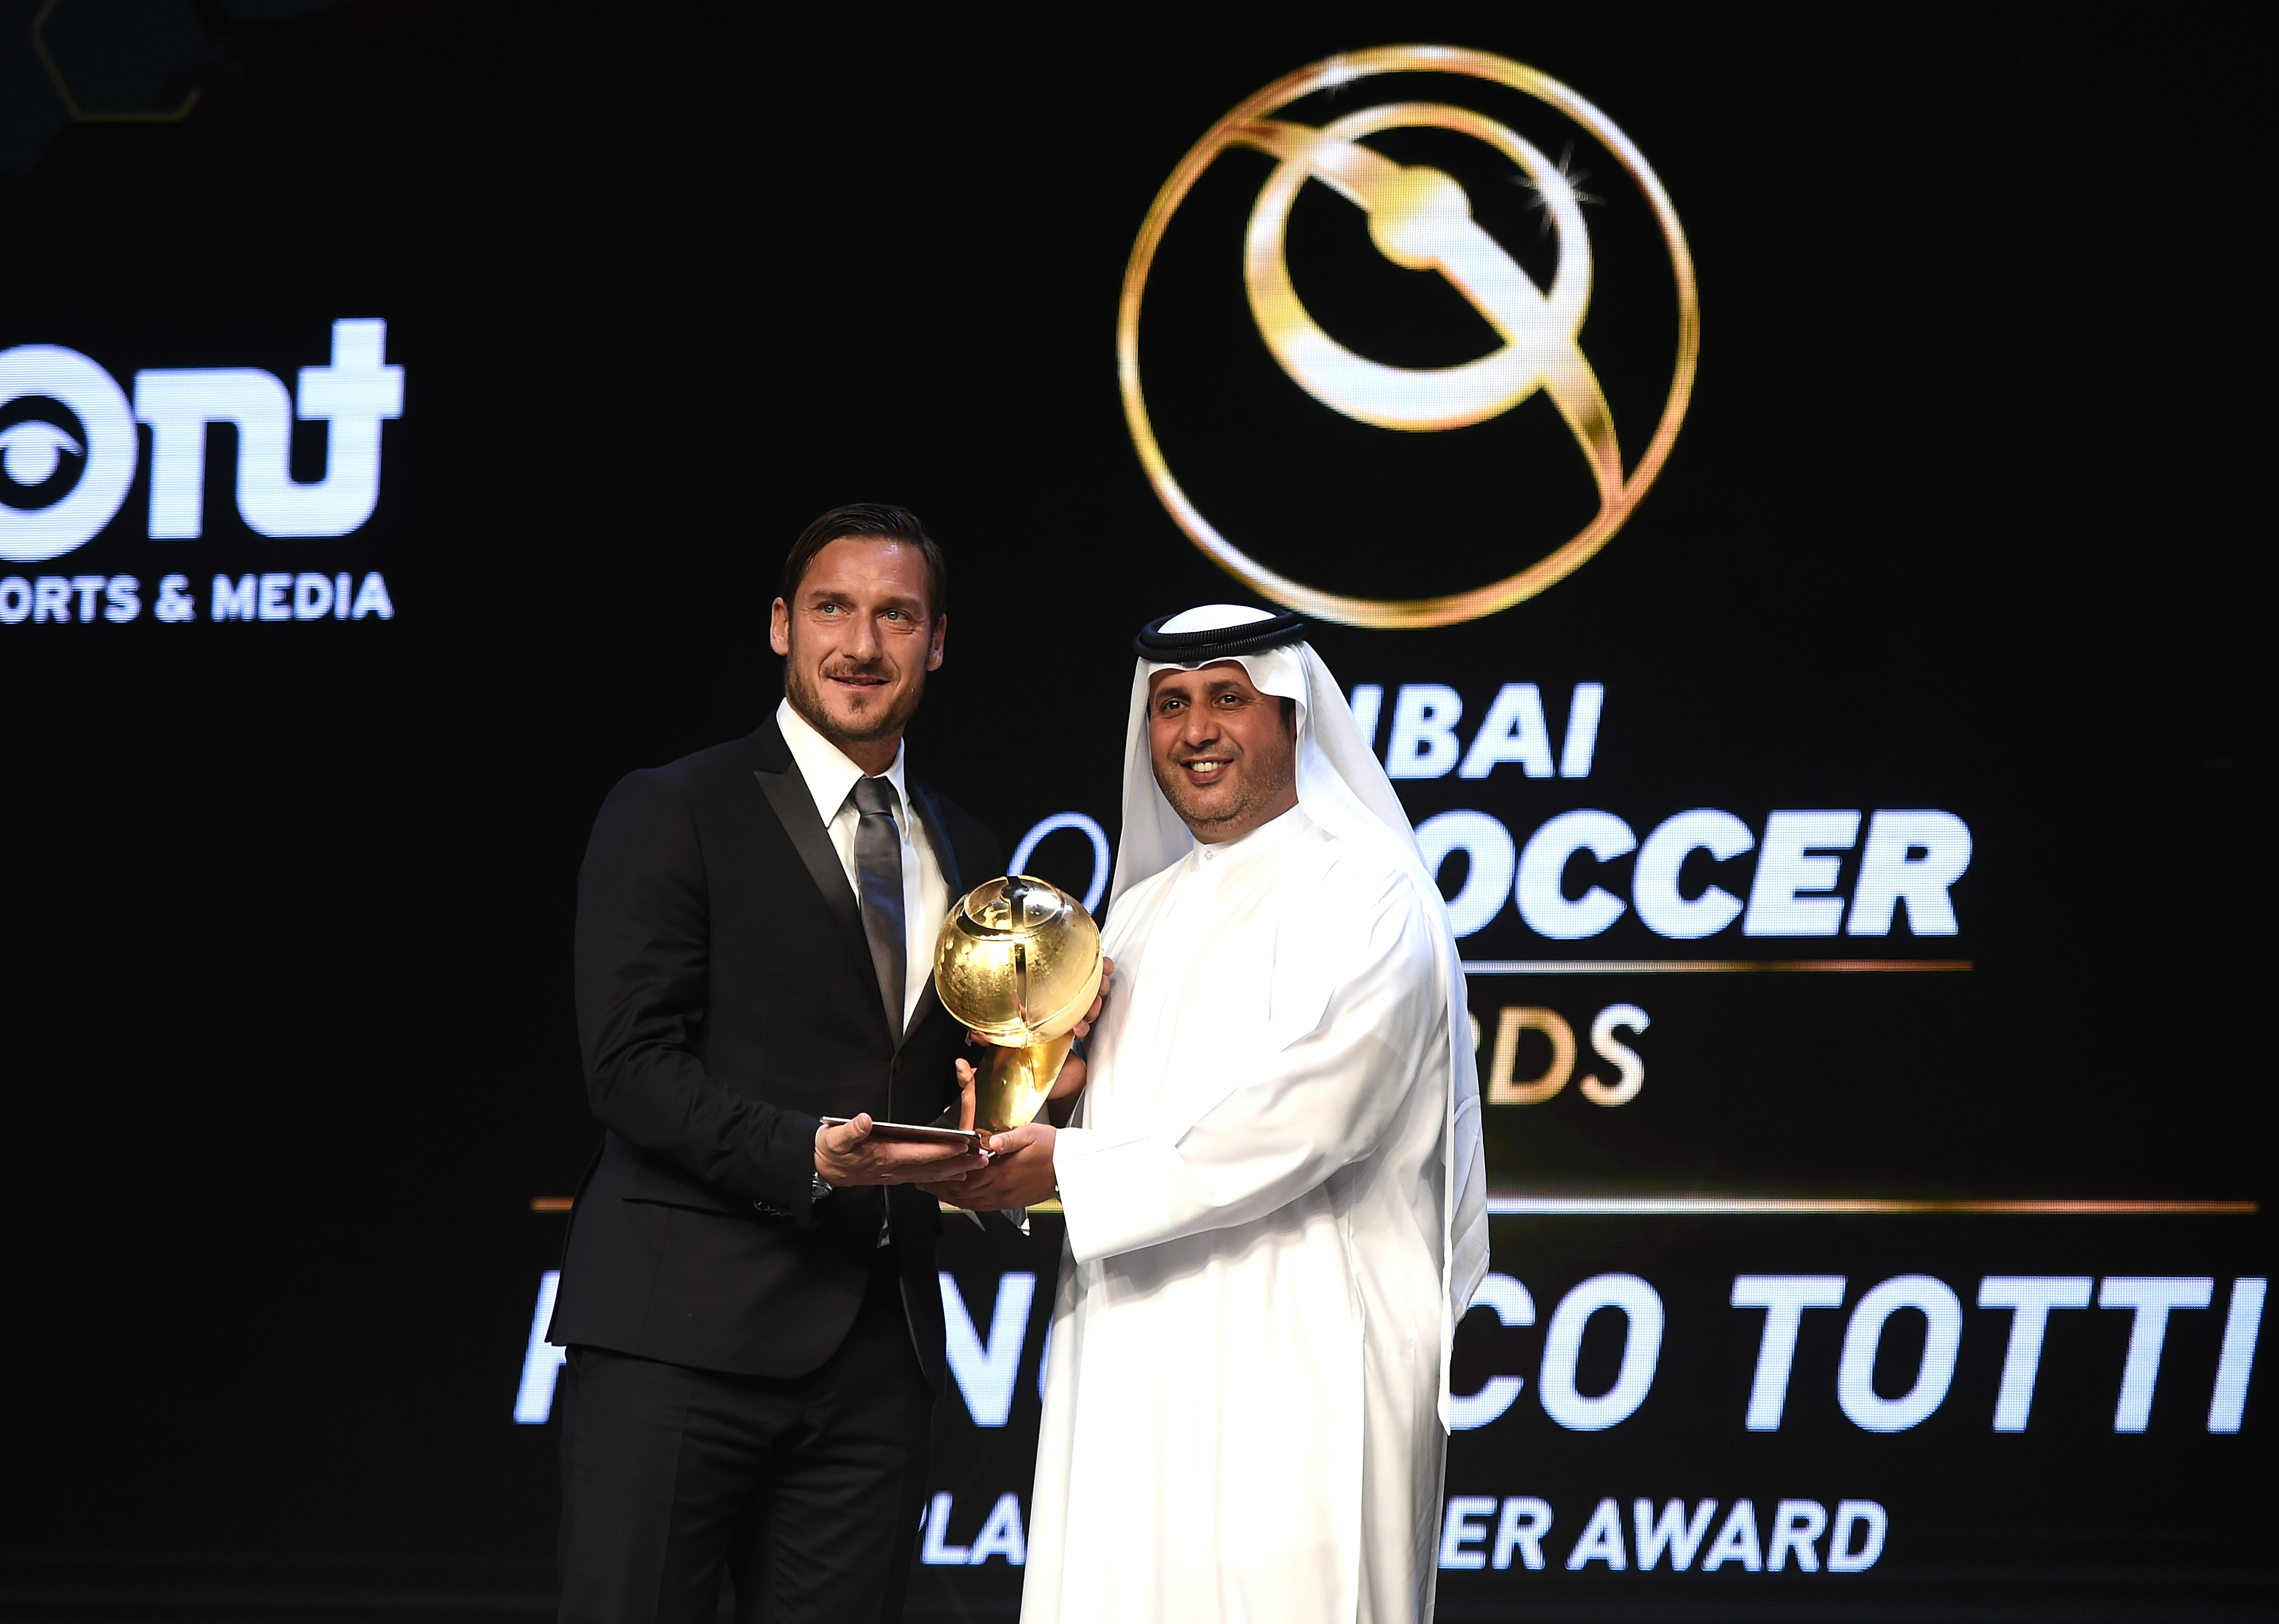 Totti Globe Awards